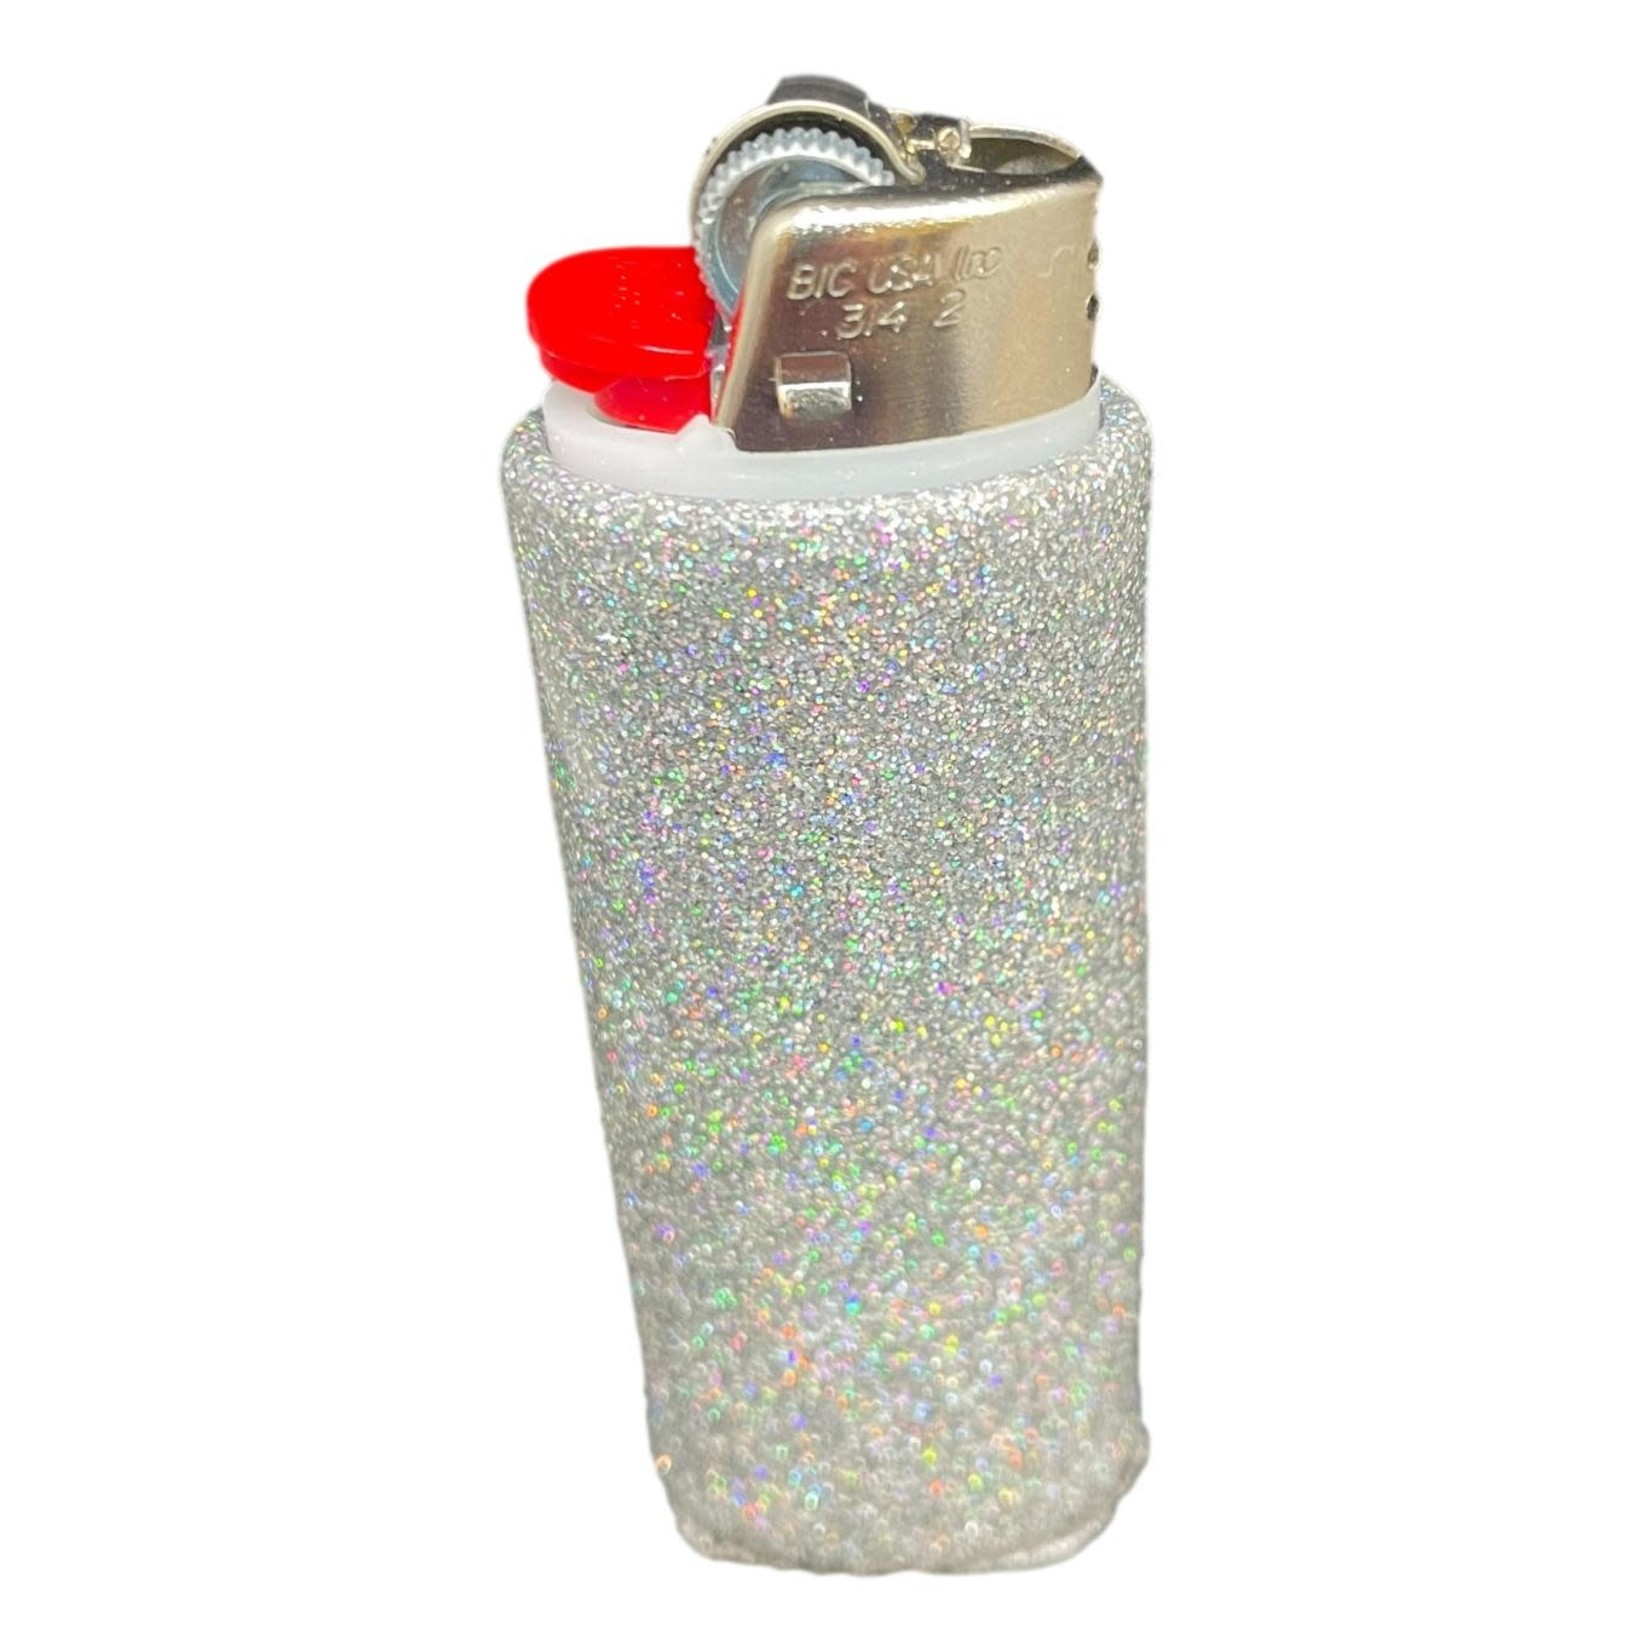 East Coast Sirens Stunning Silver Lighter Case (Small)